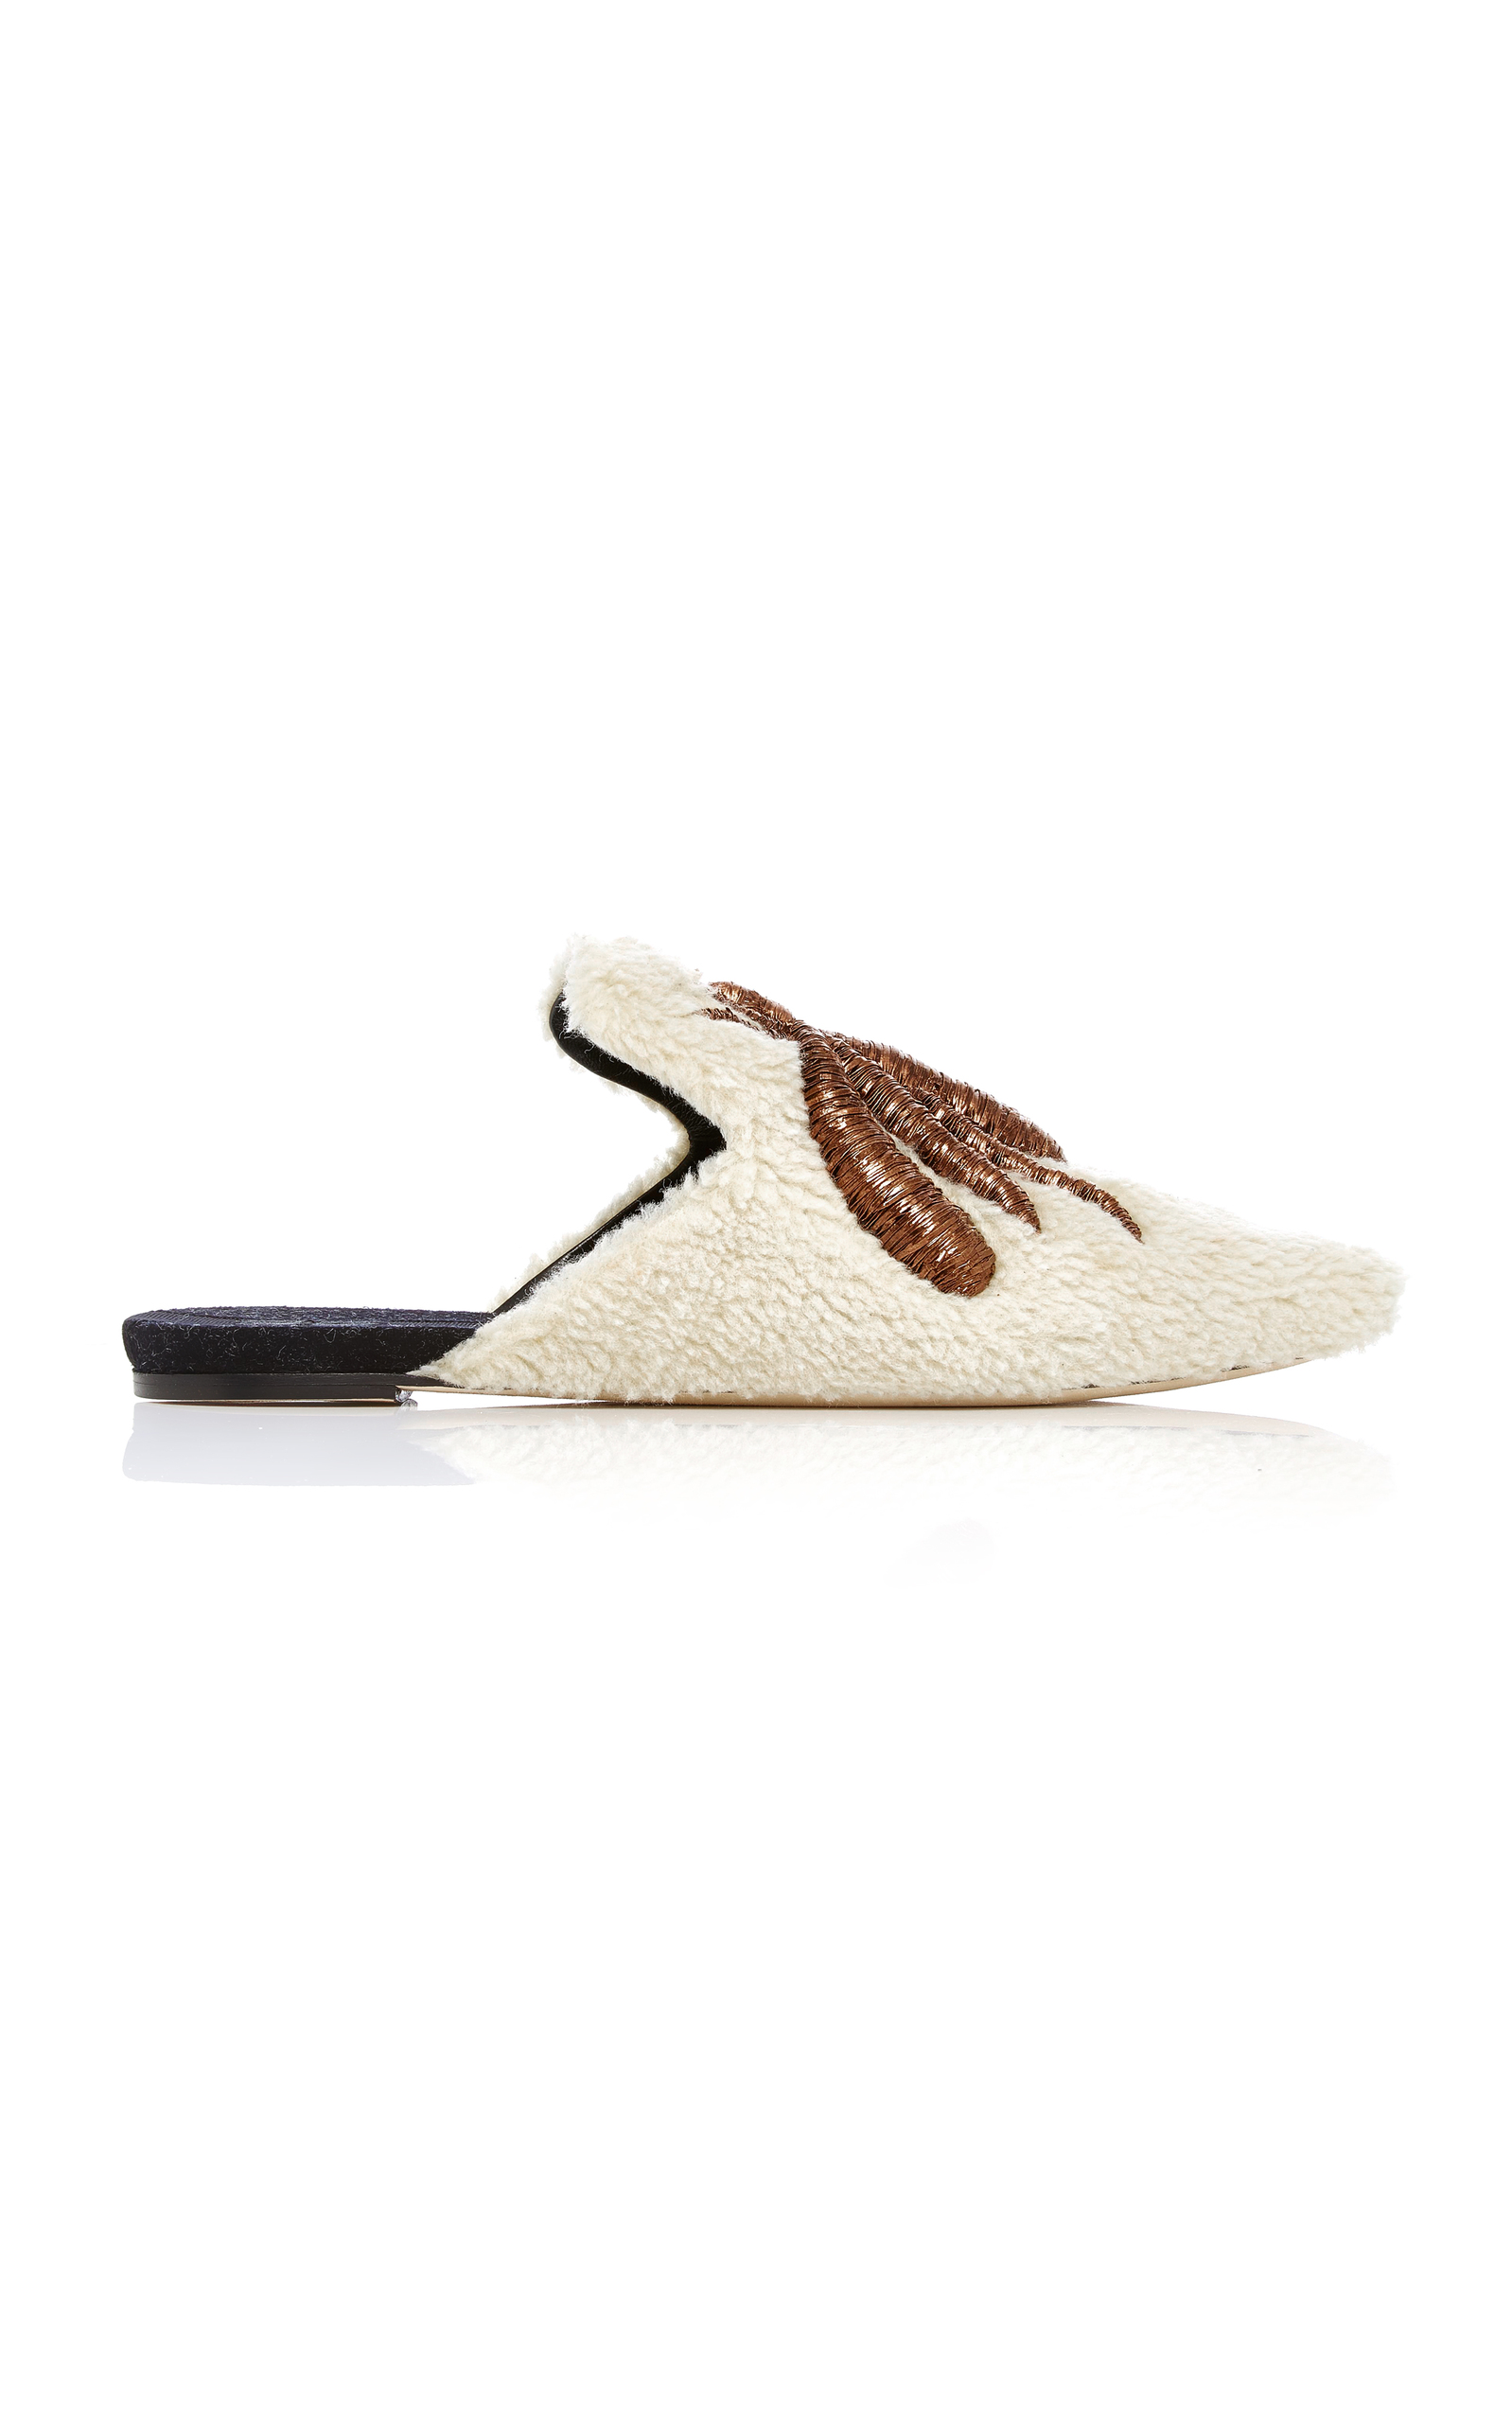 Embroidered Slippers Spring/summer Sanayi 313 VukRuw3q